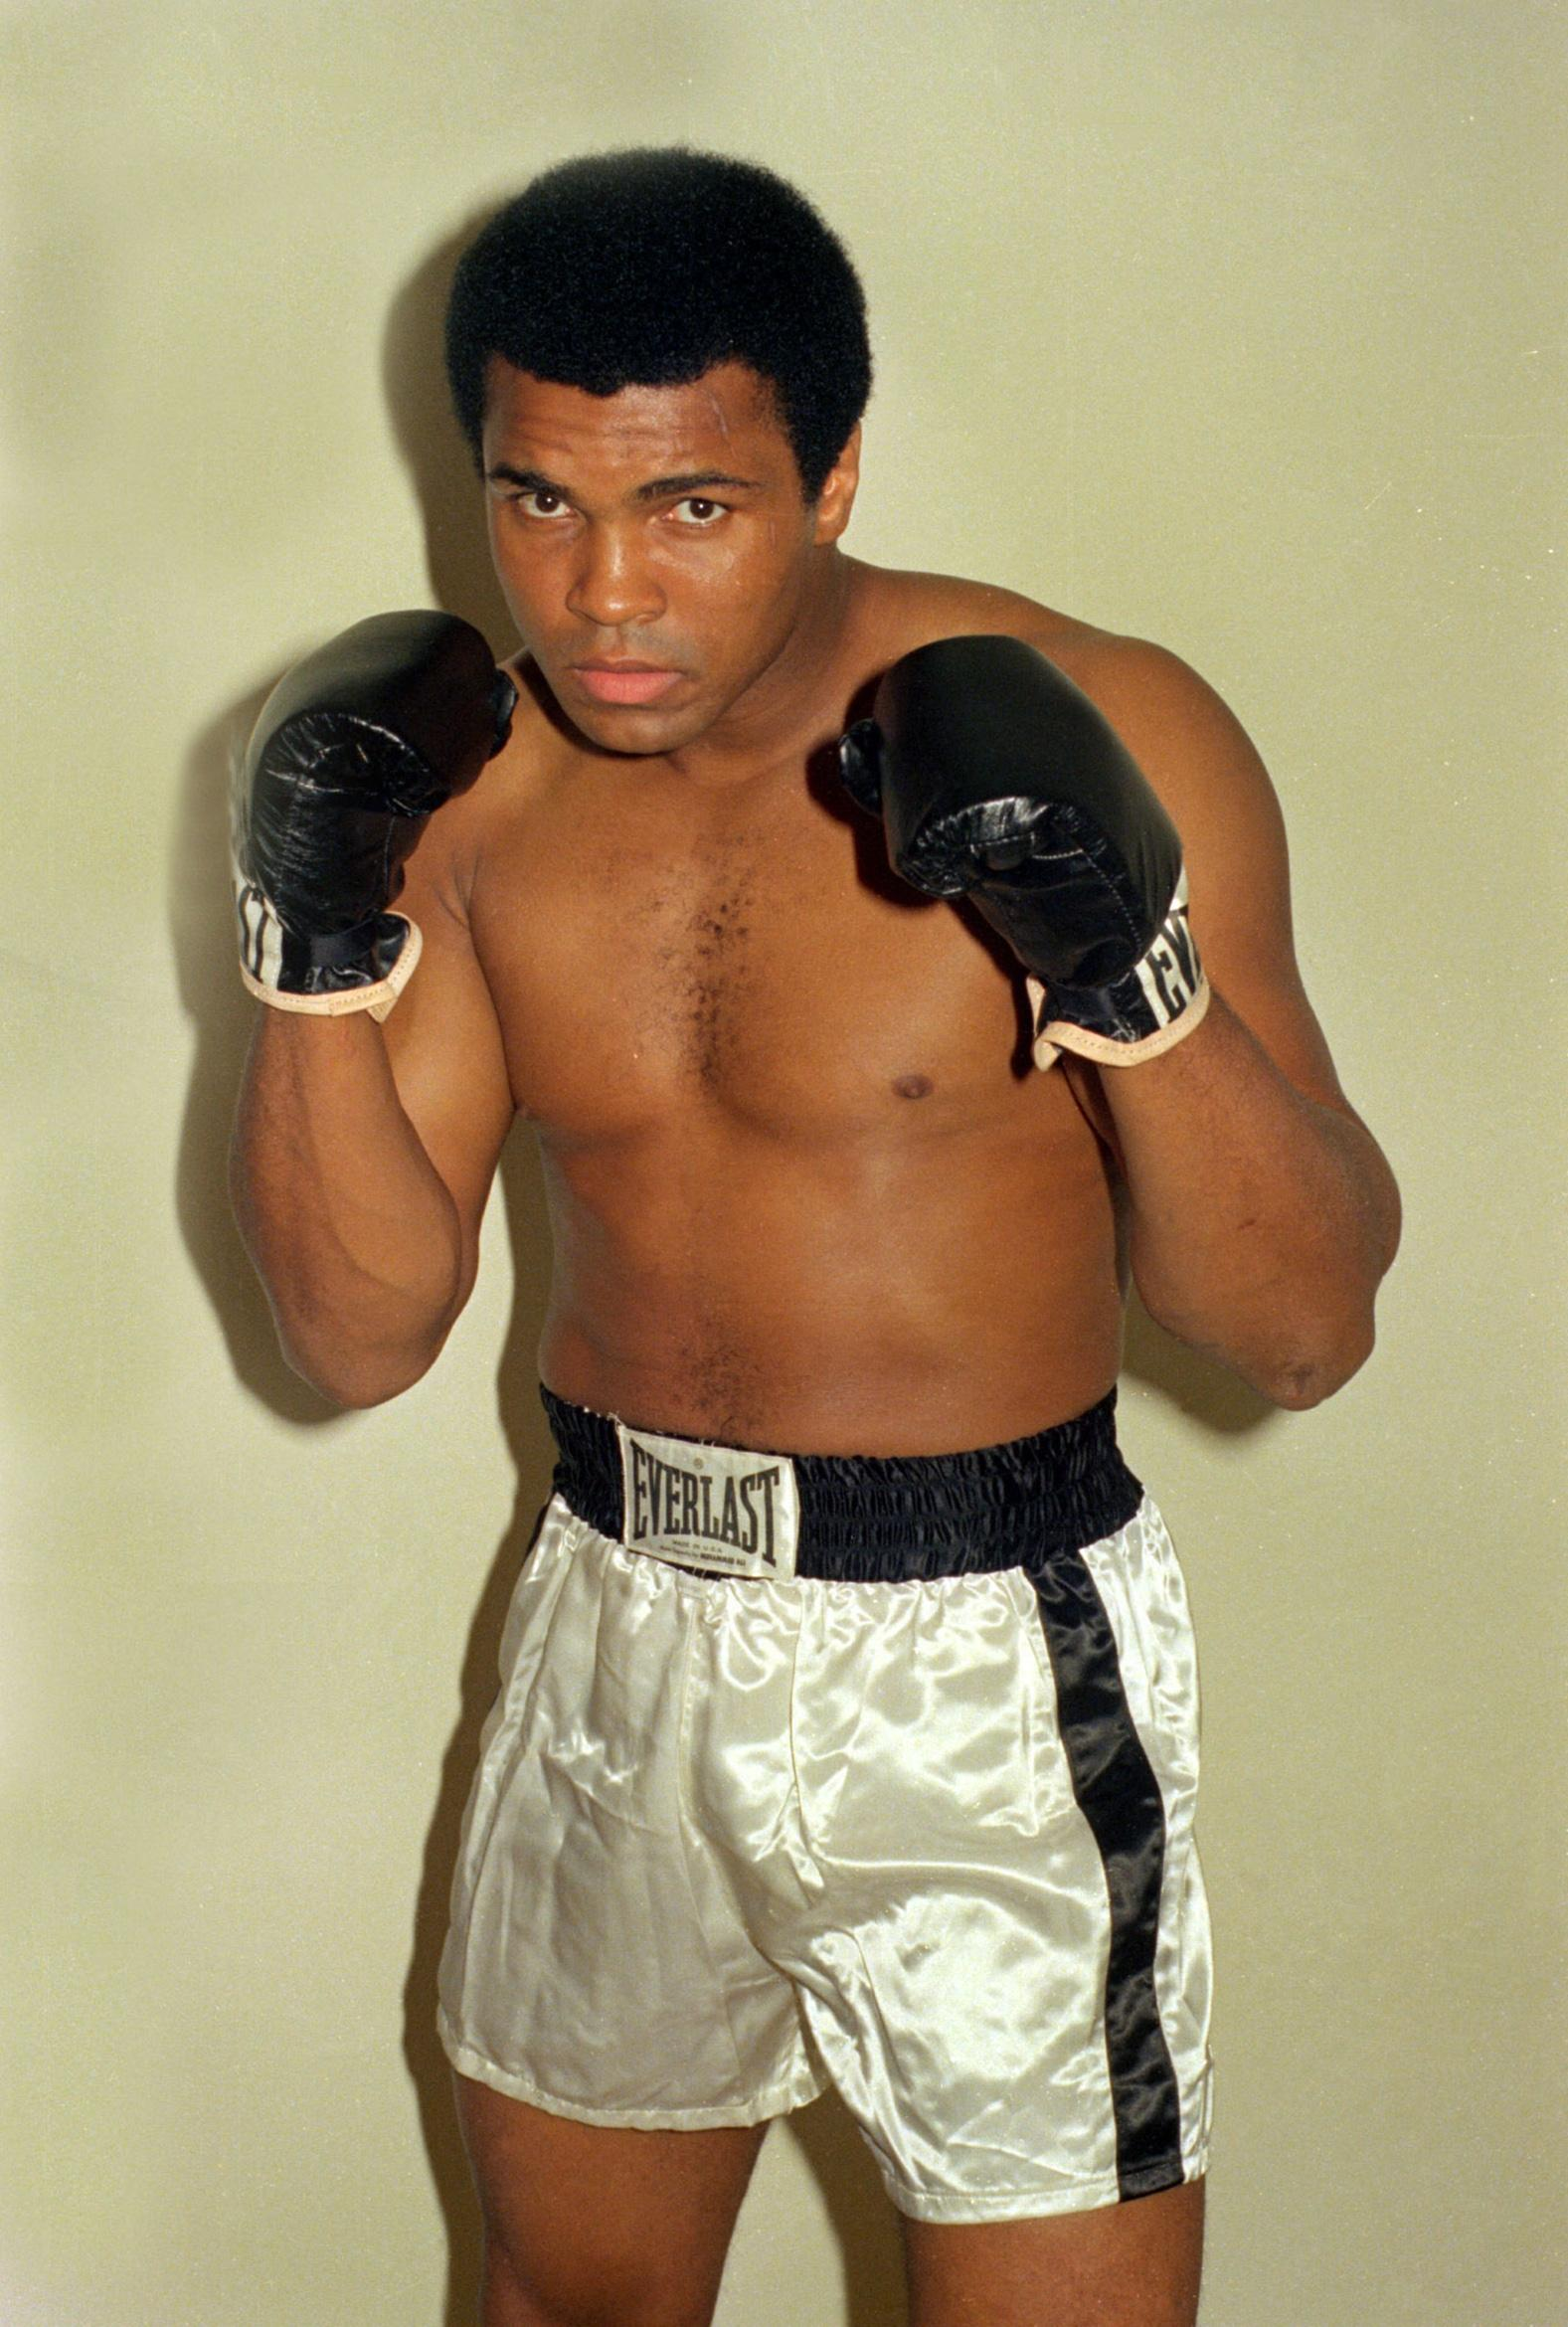 Muhammad Ali passed away in June 2016, aged 74